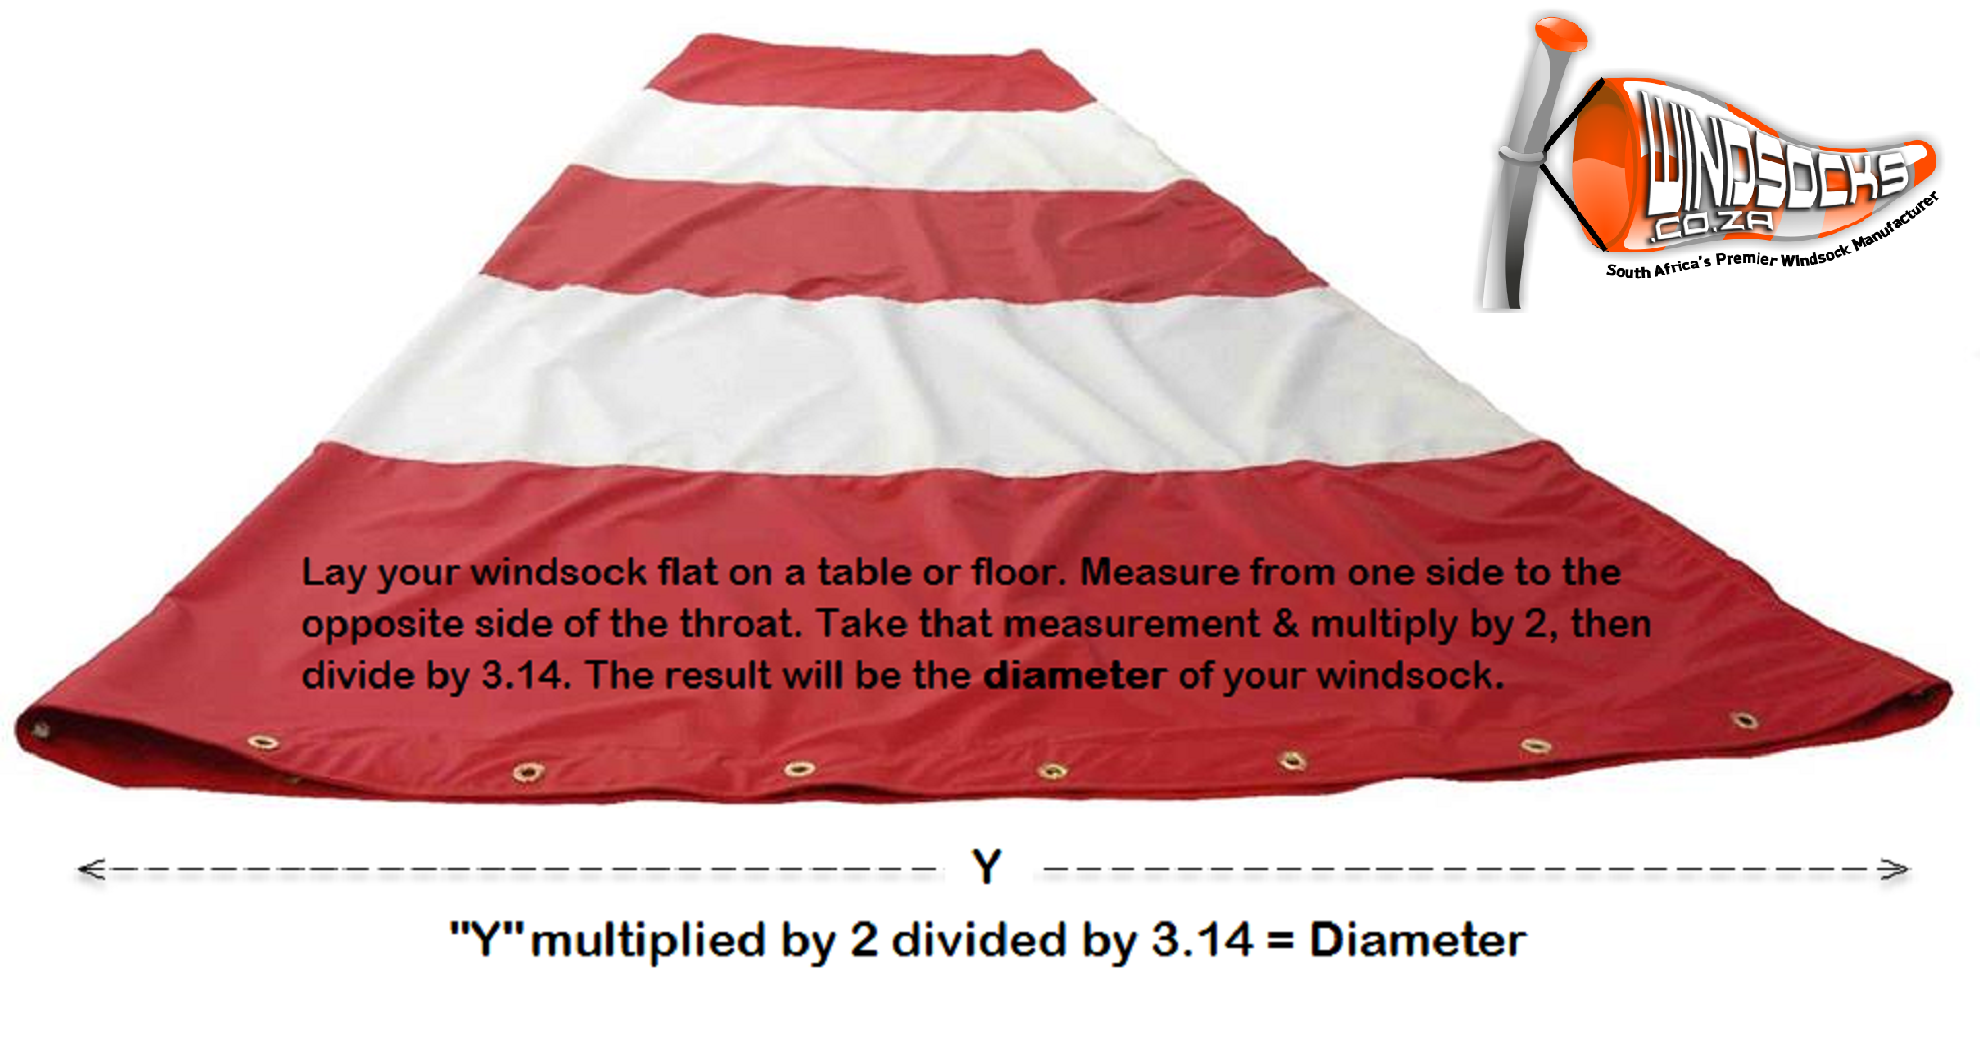 How to measure your windsock1